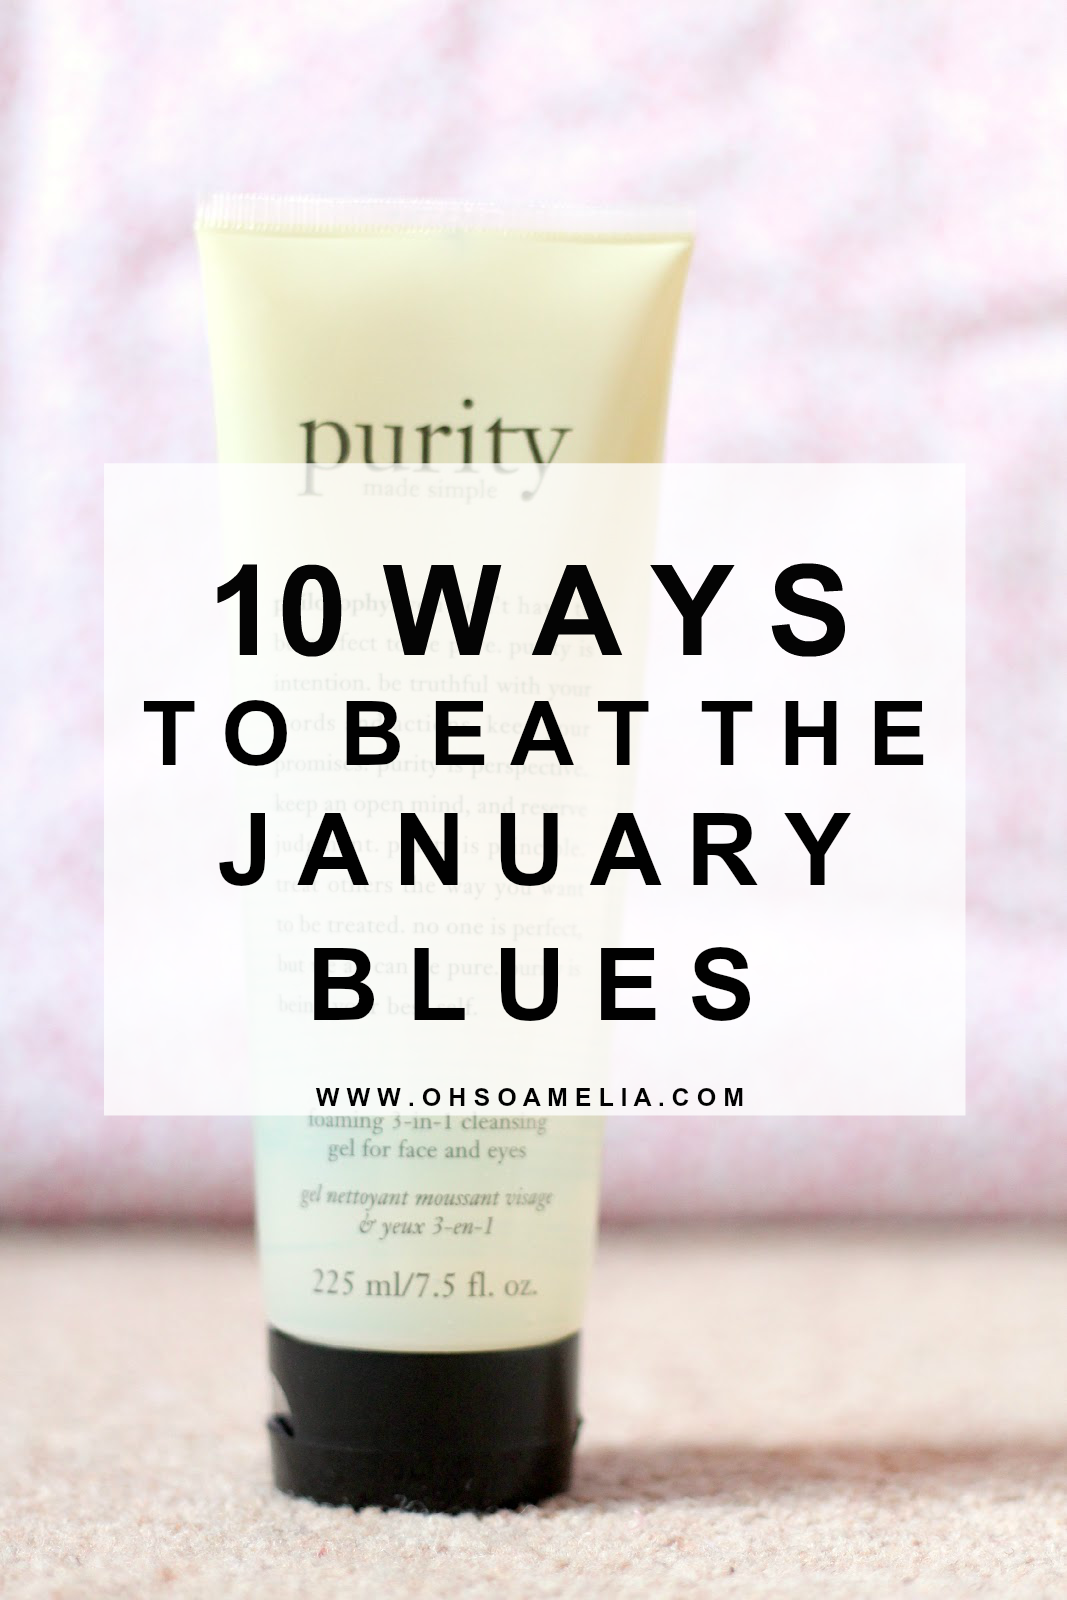 10 tried and tested ways to beat the January blues